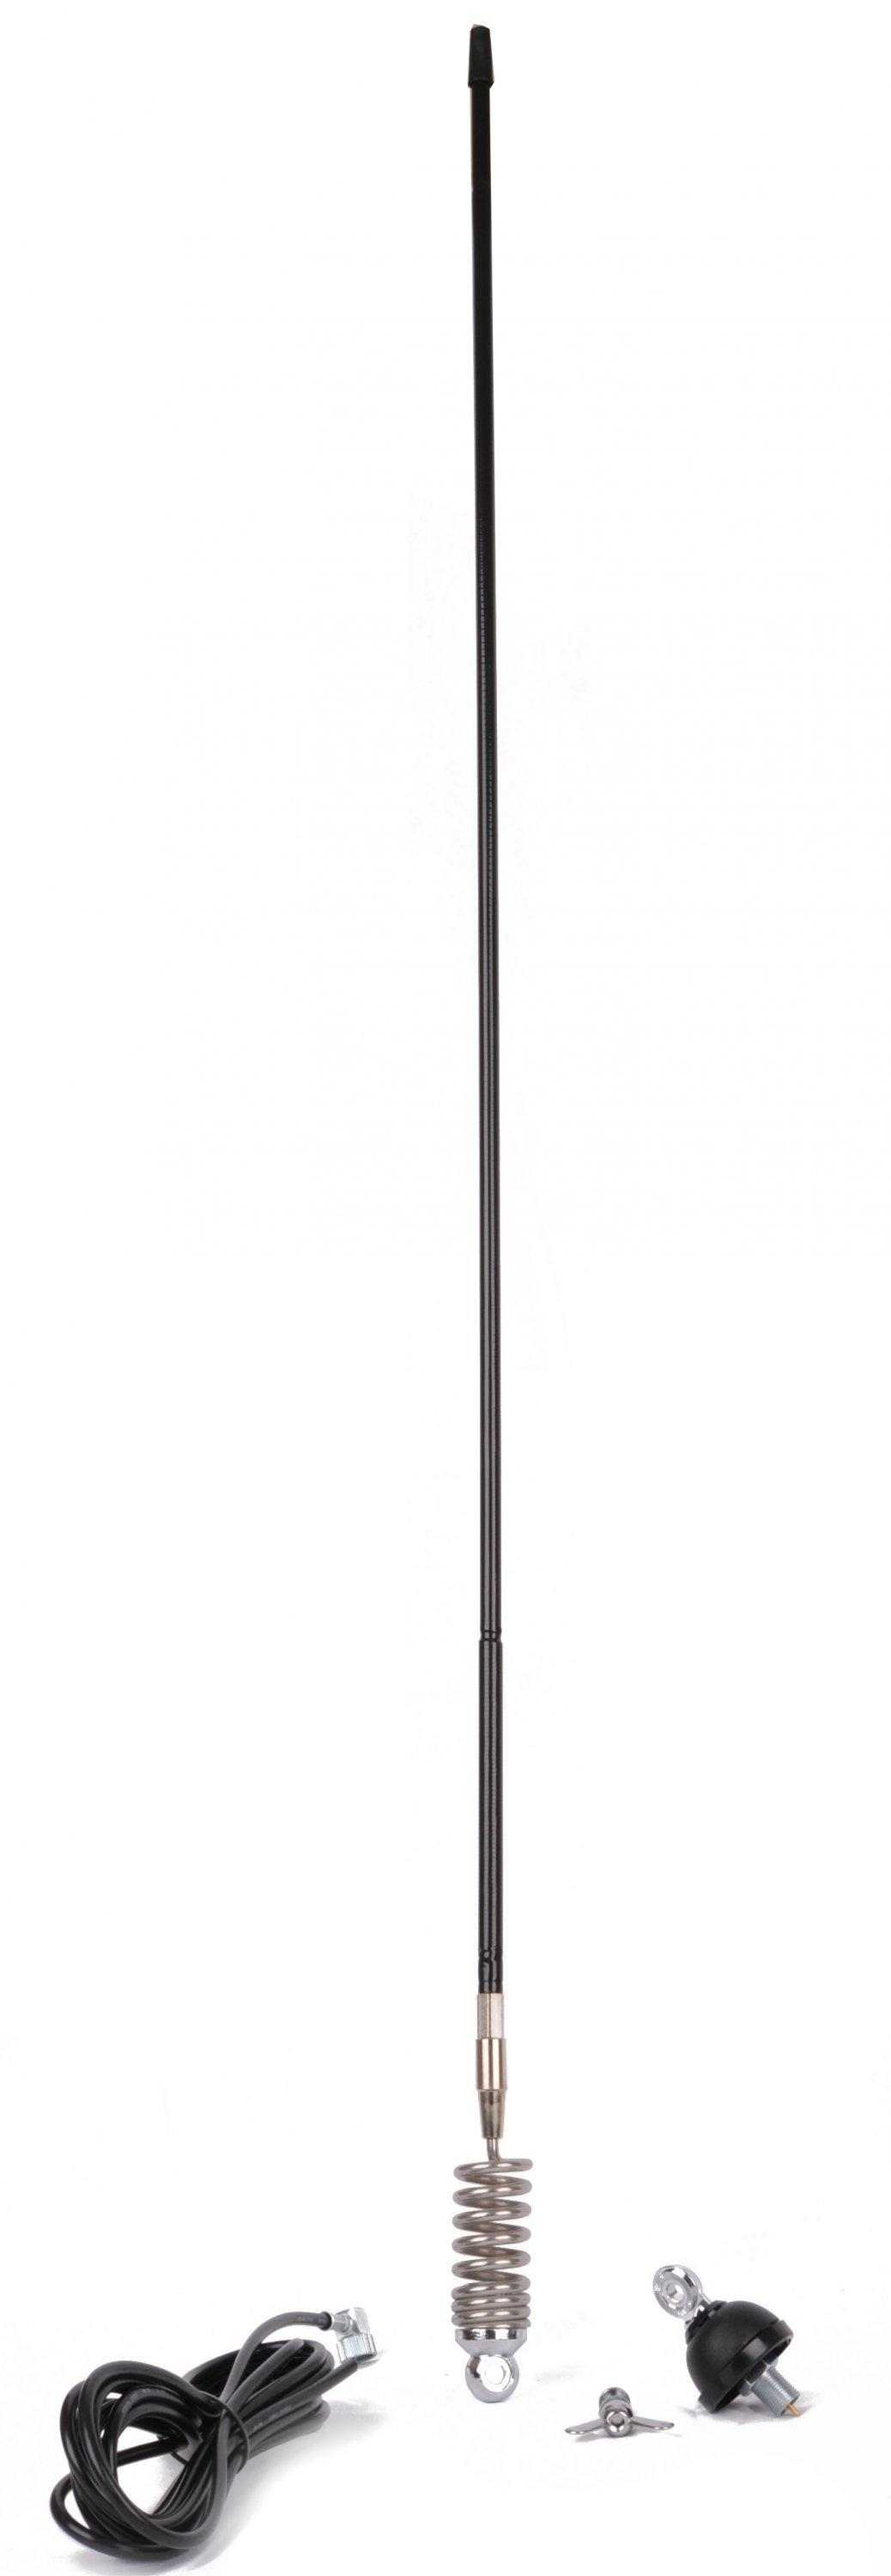 Sirio Delta 27-M-95 Mobile CB Antenna With Spring Base